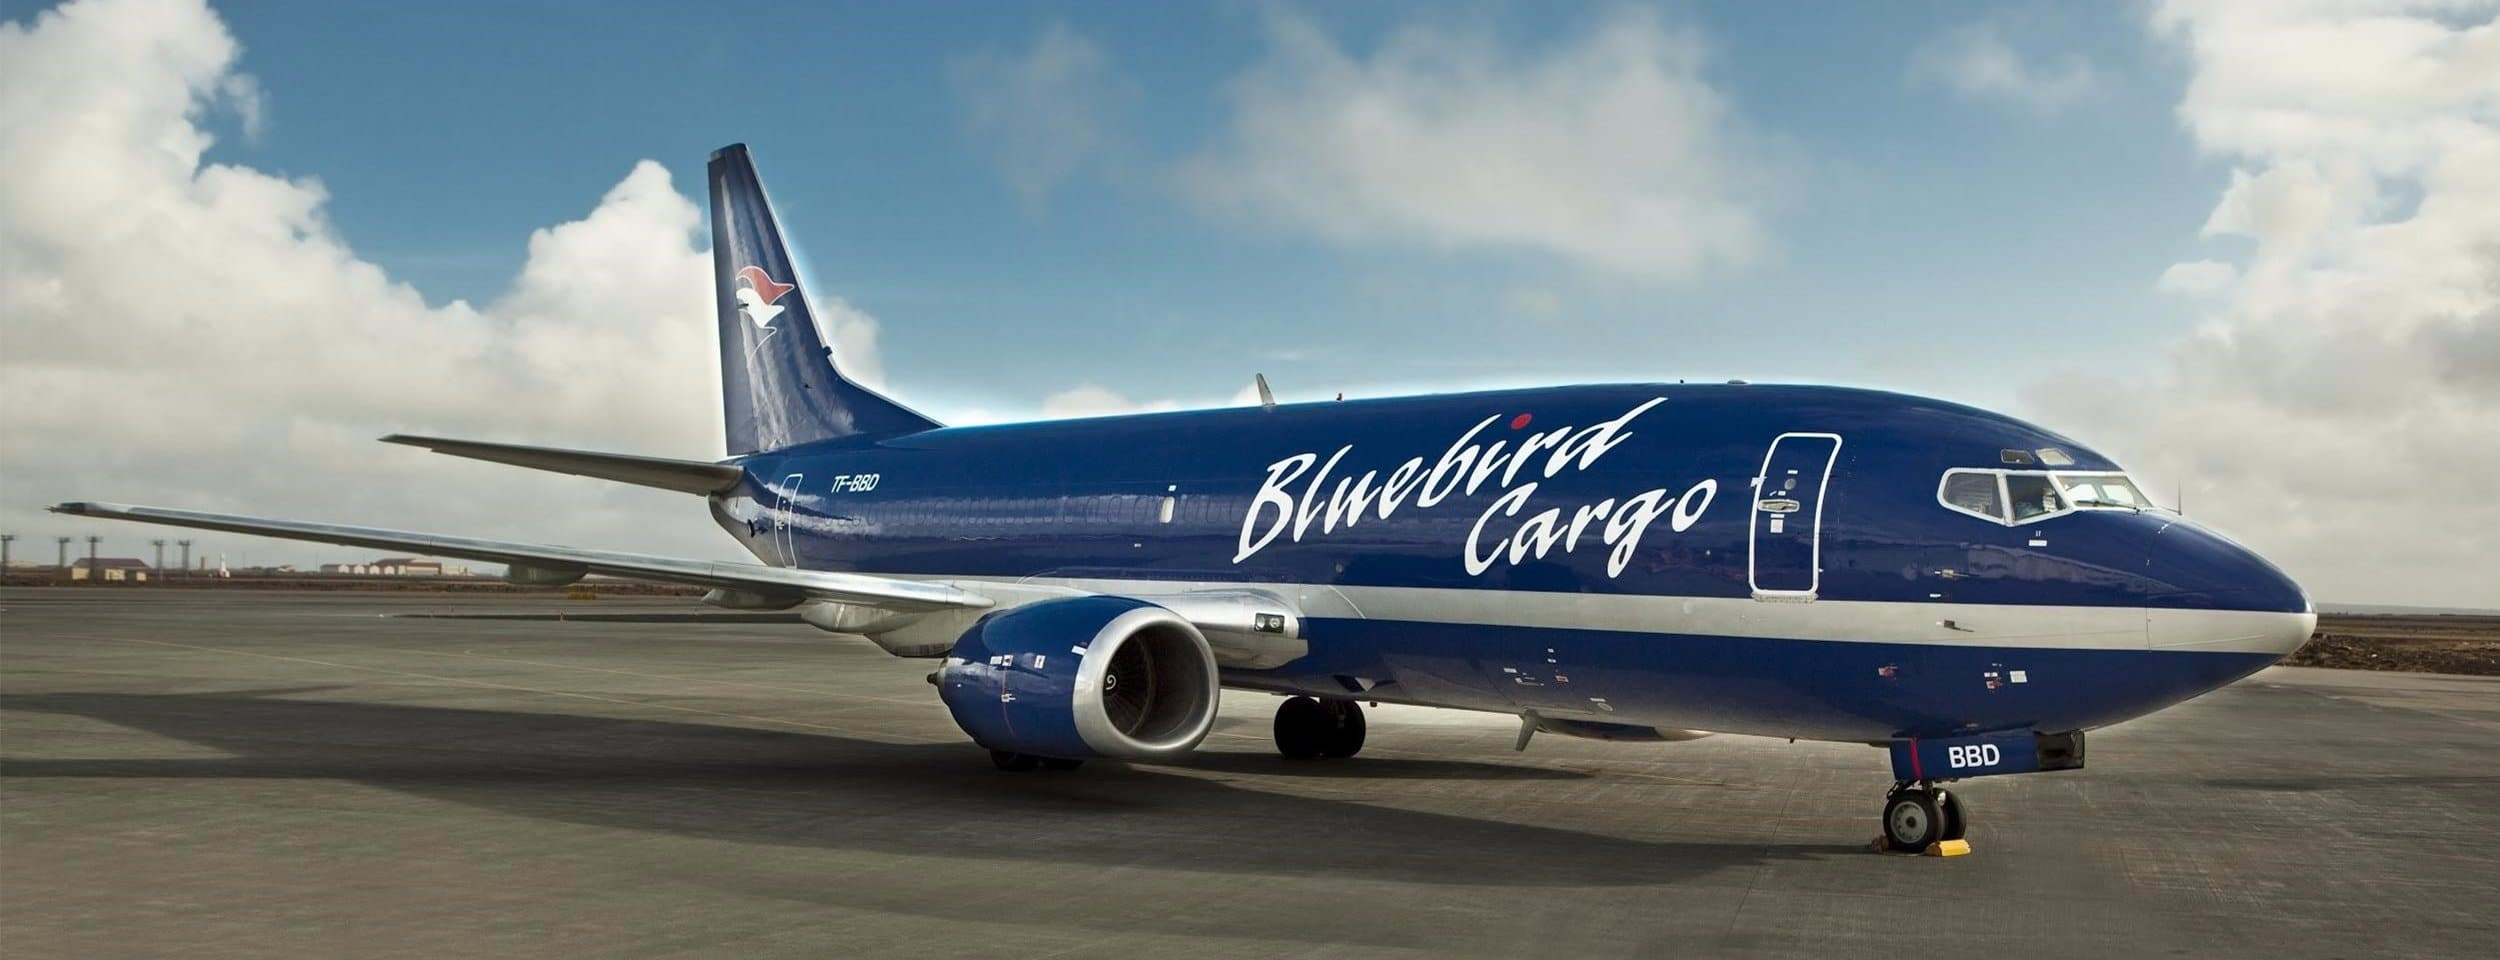 Bluebird Cargo transport airplane